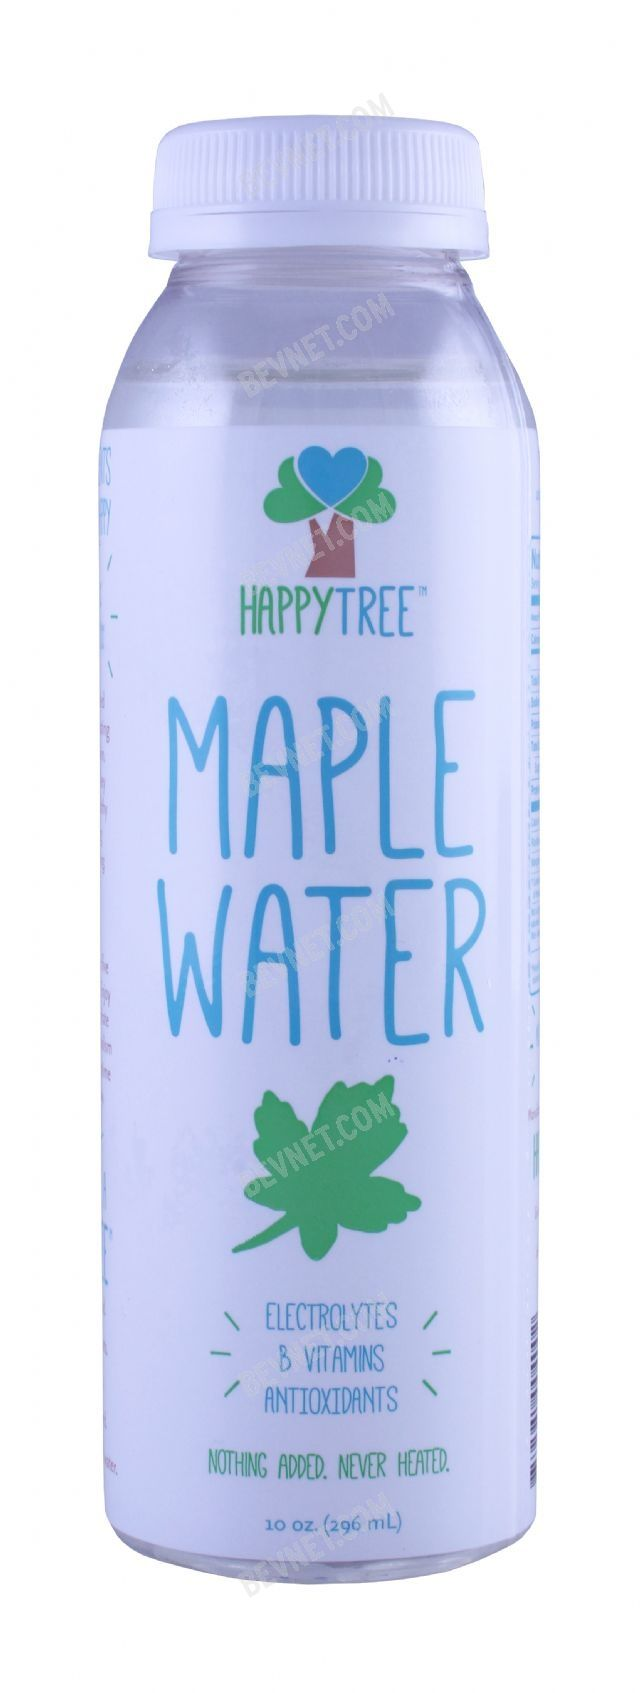 Happy Tree Maple Water: